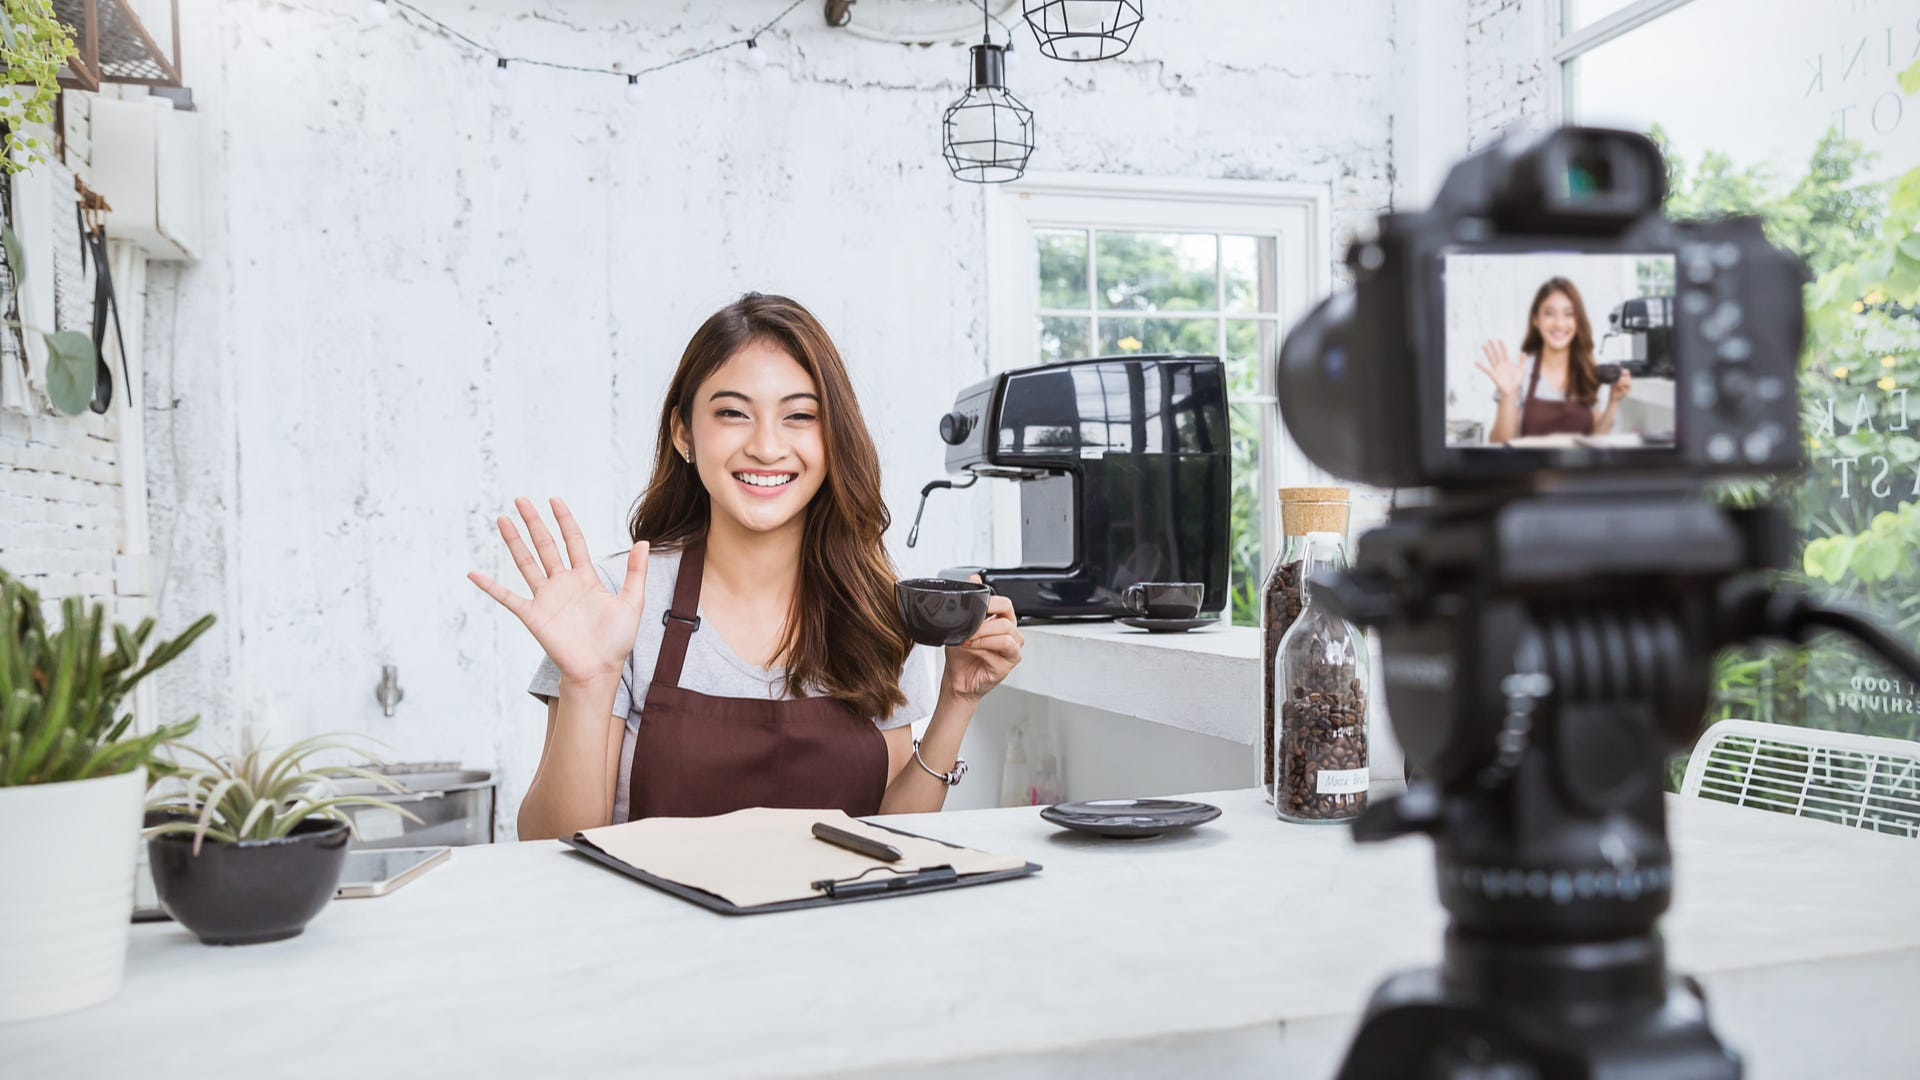 A woman films herself on a camera in a kitchen area.